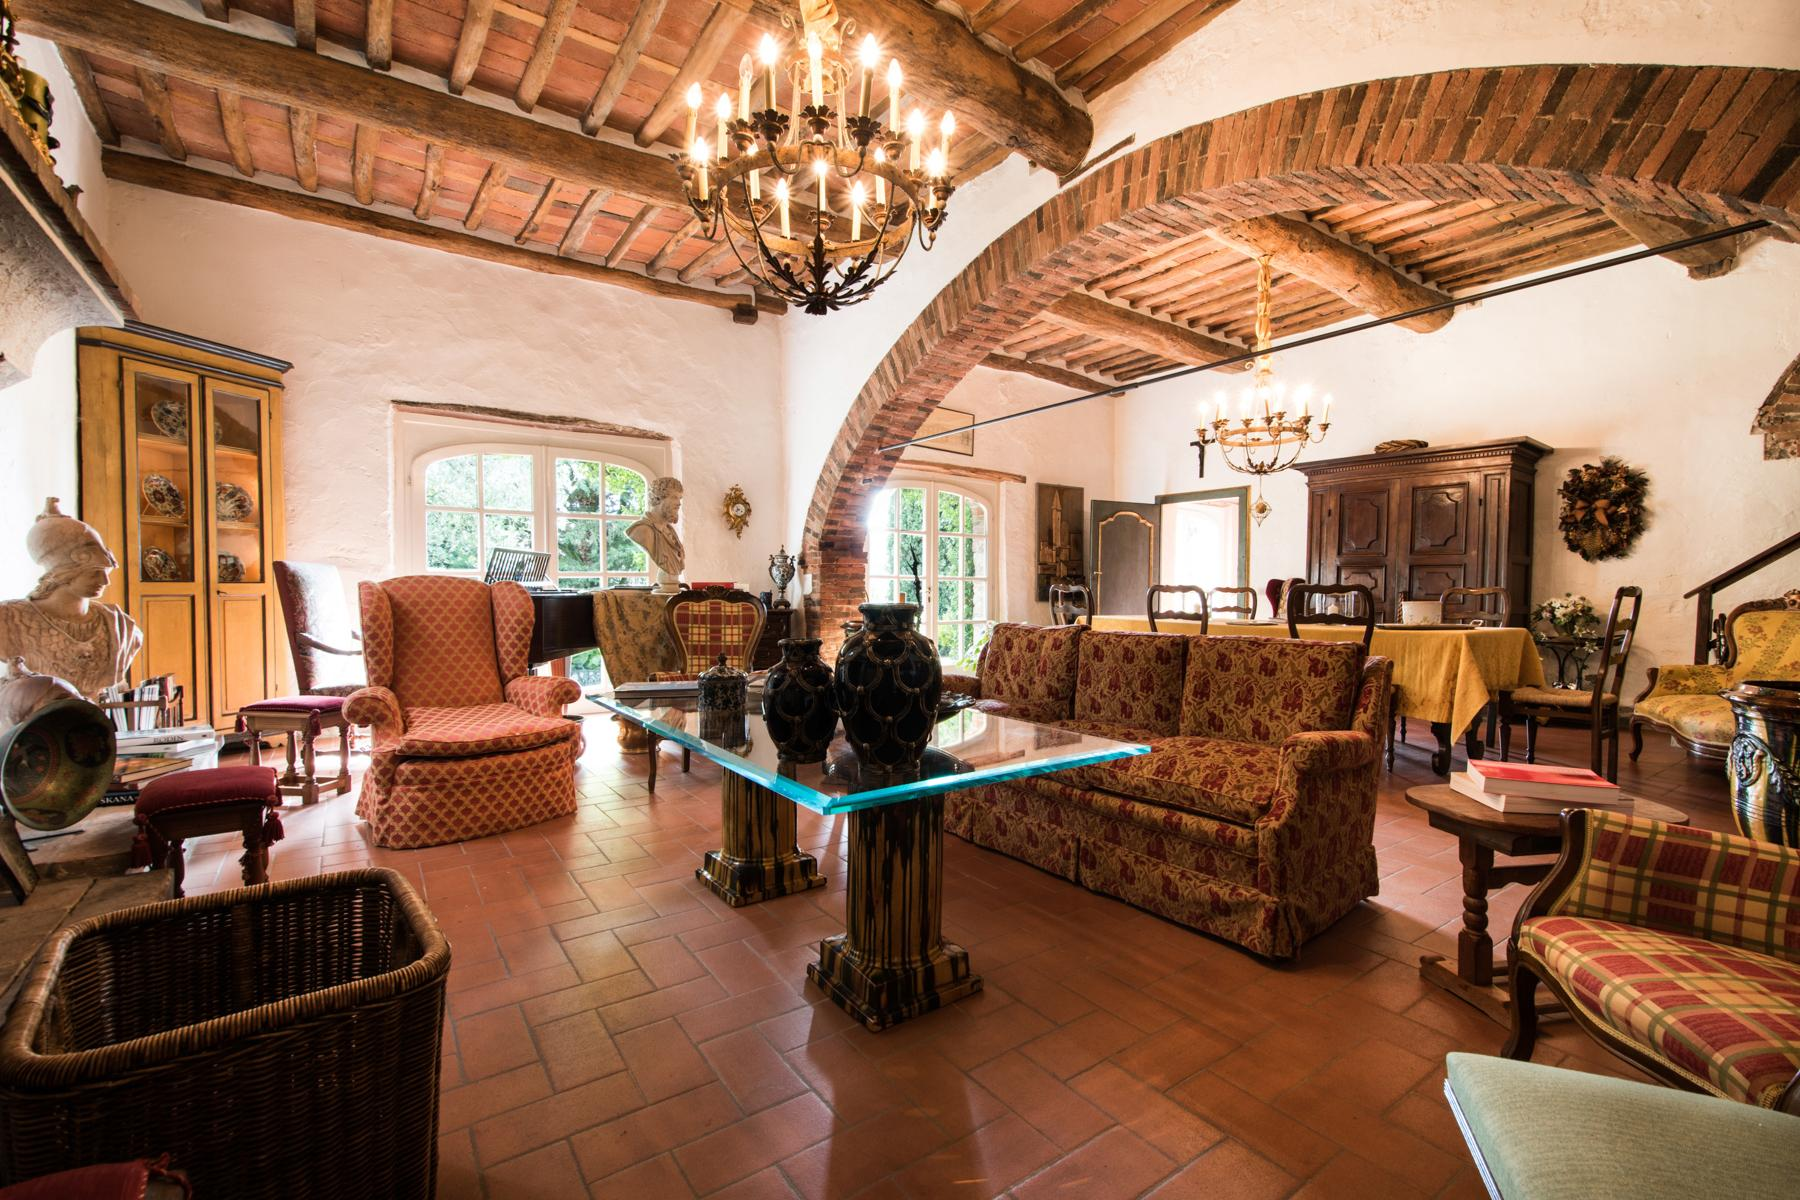 Marvelous villa in the countryside of Lucca - 36